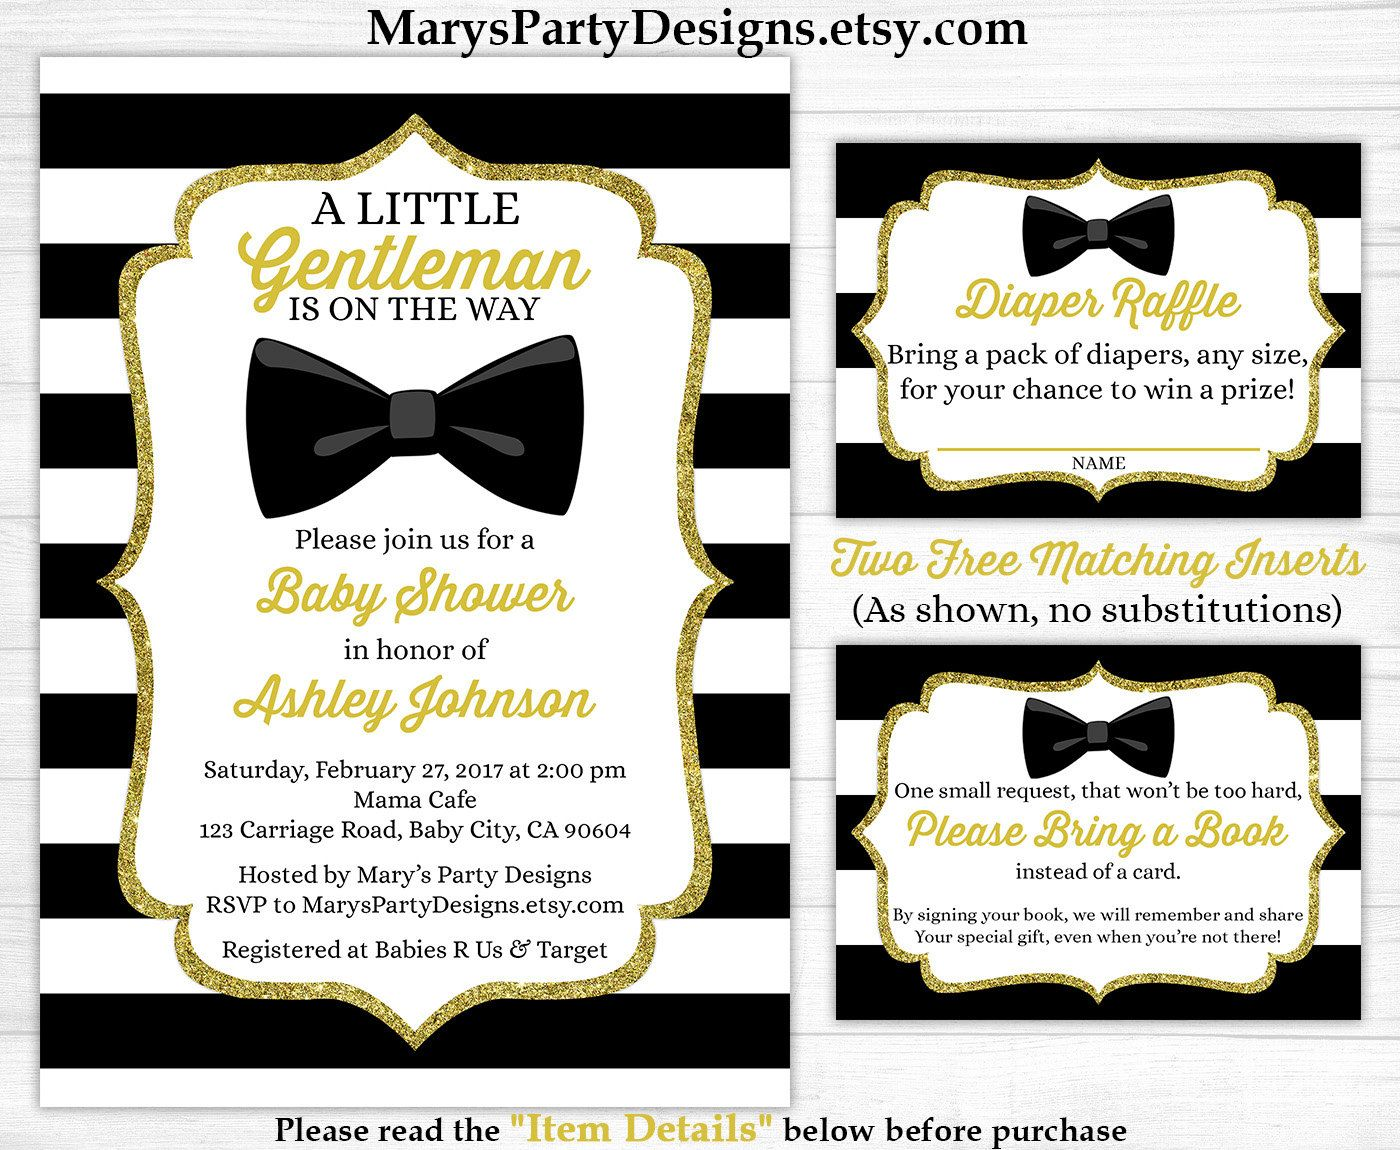 Little Gentleman Baby Shower Invitation - Boy Gold Black White Stripes Man  Bow Tie Free Diaper Raffle Ticket Book Request Card Printable by ...